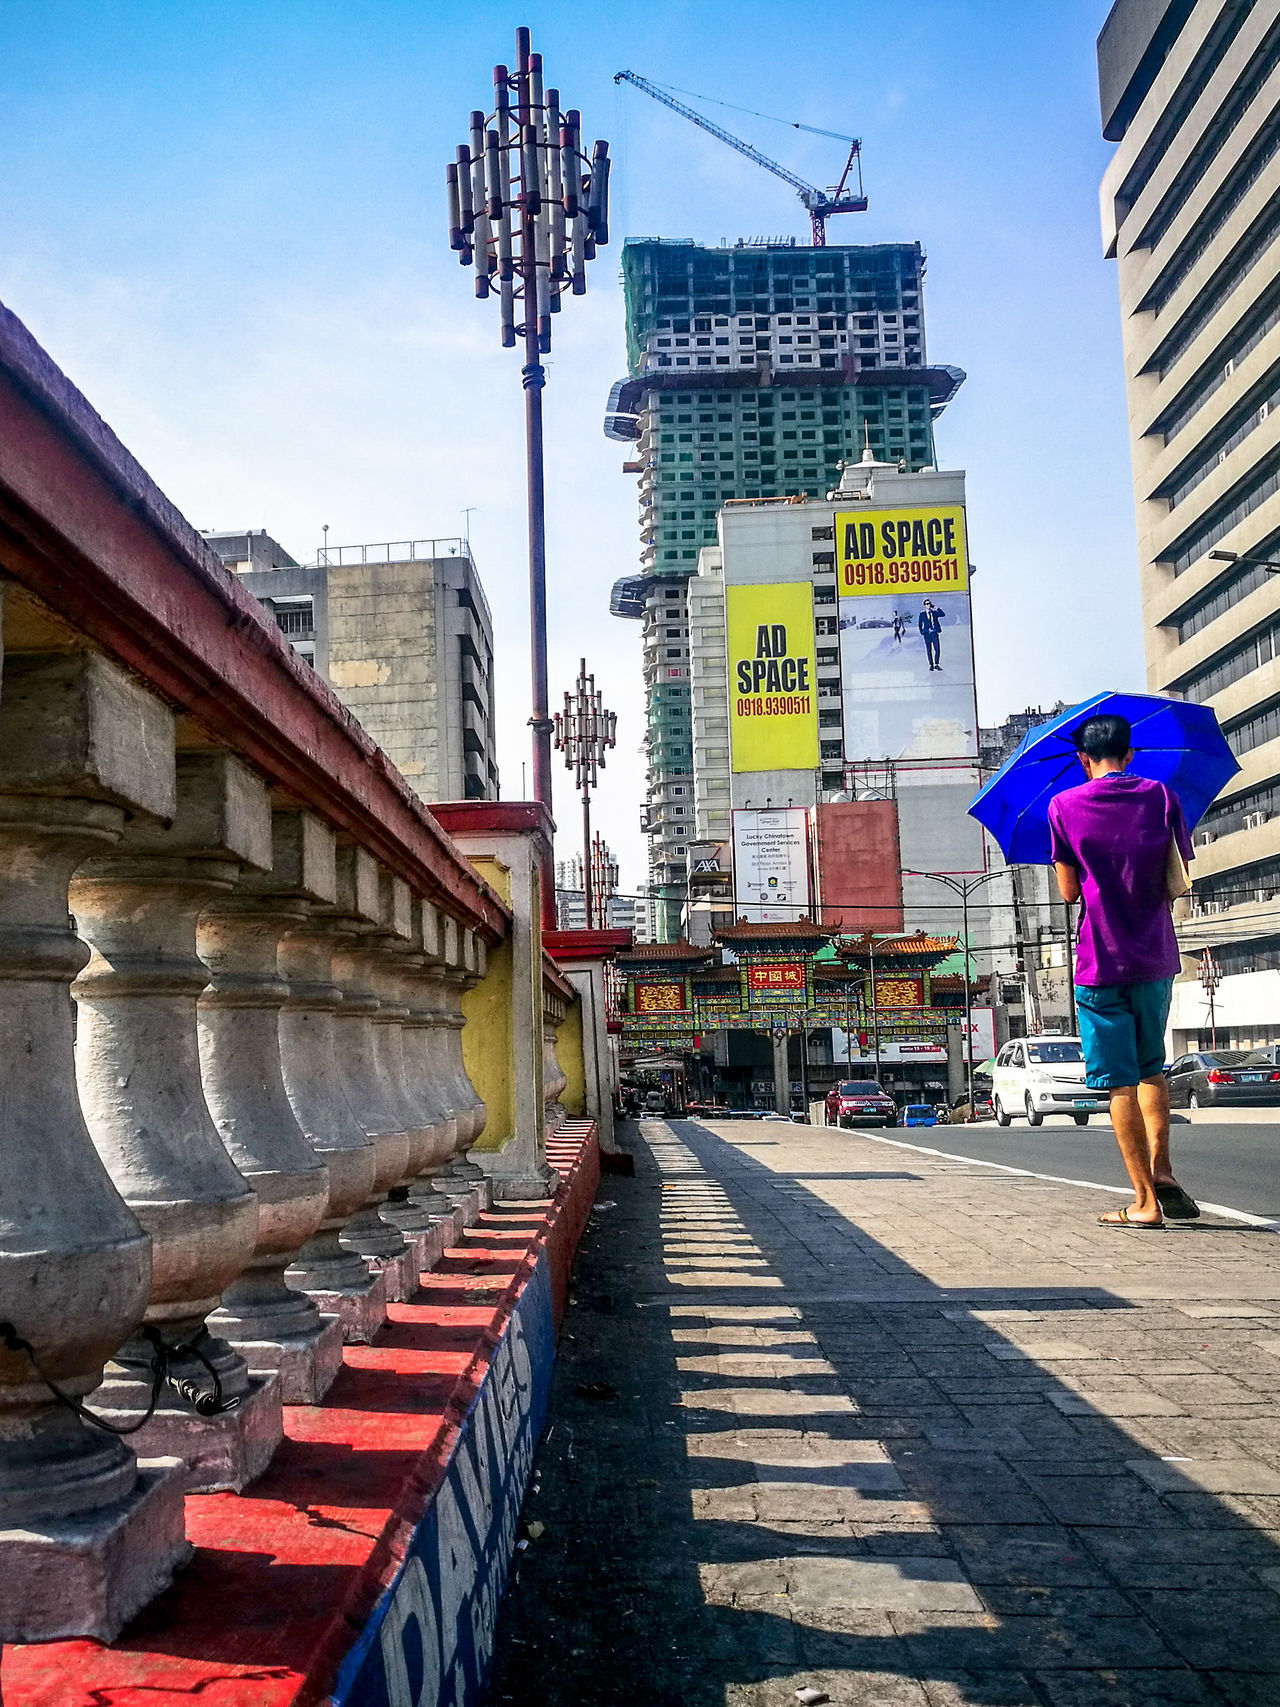 Road to Binondo... Adult Full Length Adults Only One Person Walking One Man Only Rear View City City Life Men Only Men Outdoors Street Road Umbrella Shadow Patterns Colums Street Photography Ads Space Ads The Street Photographer - 2017 EyeEm Awards